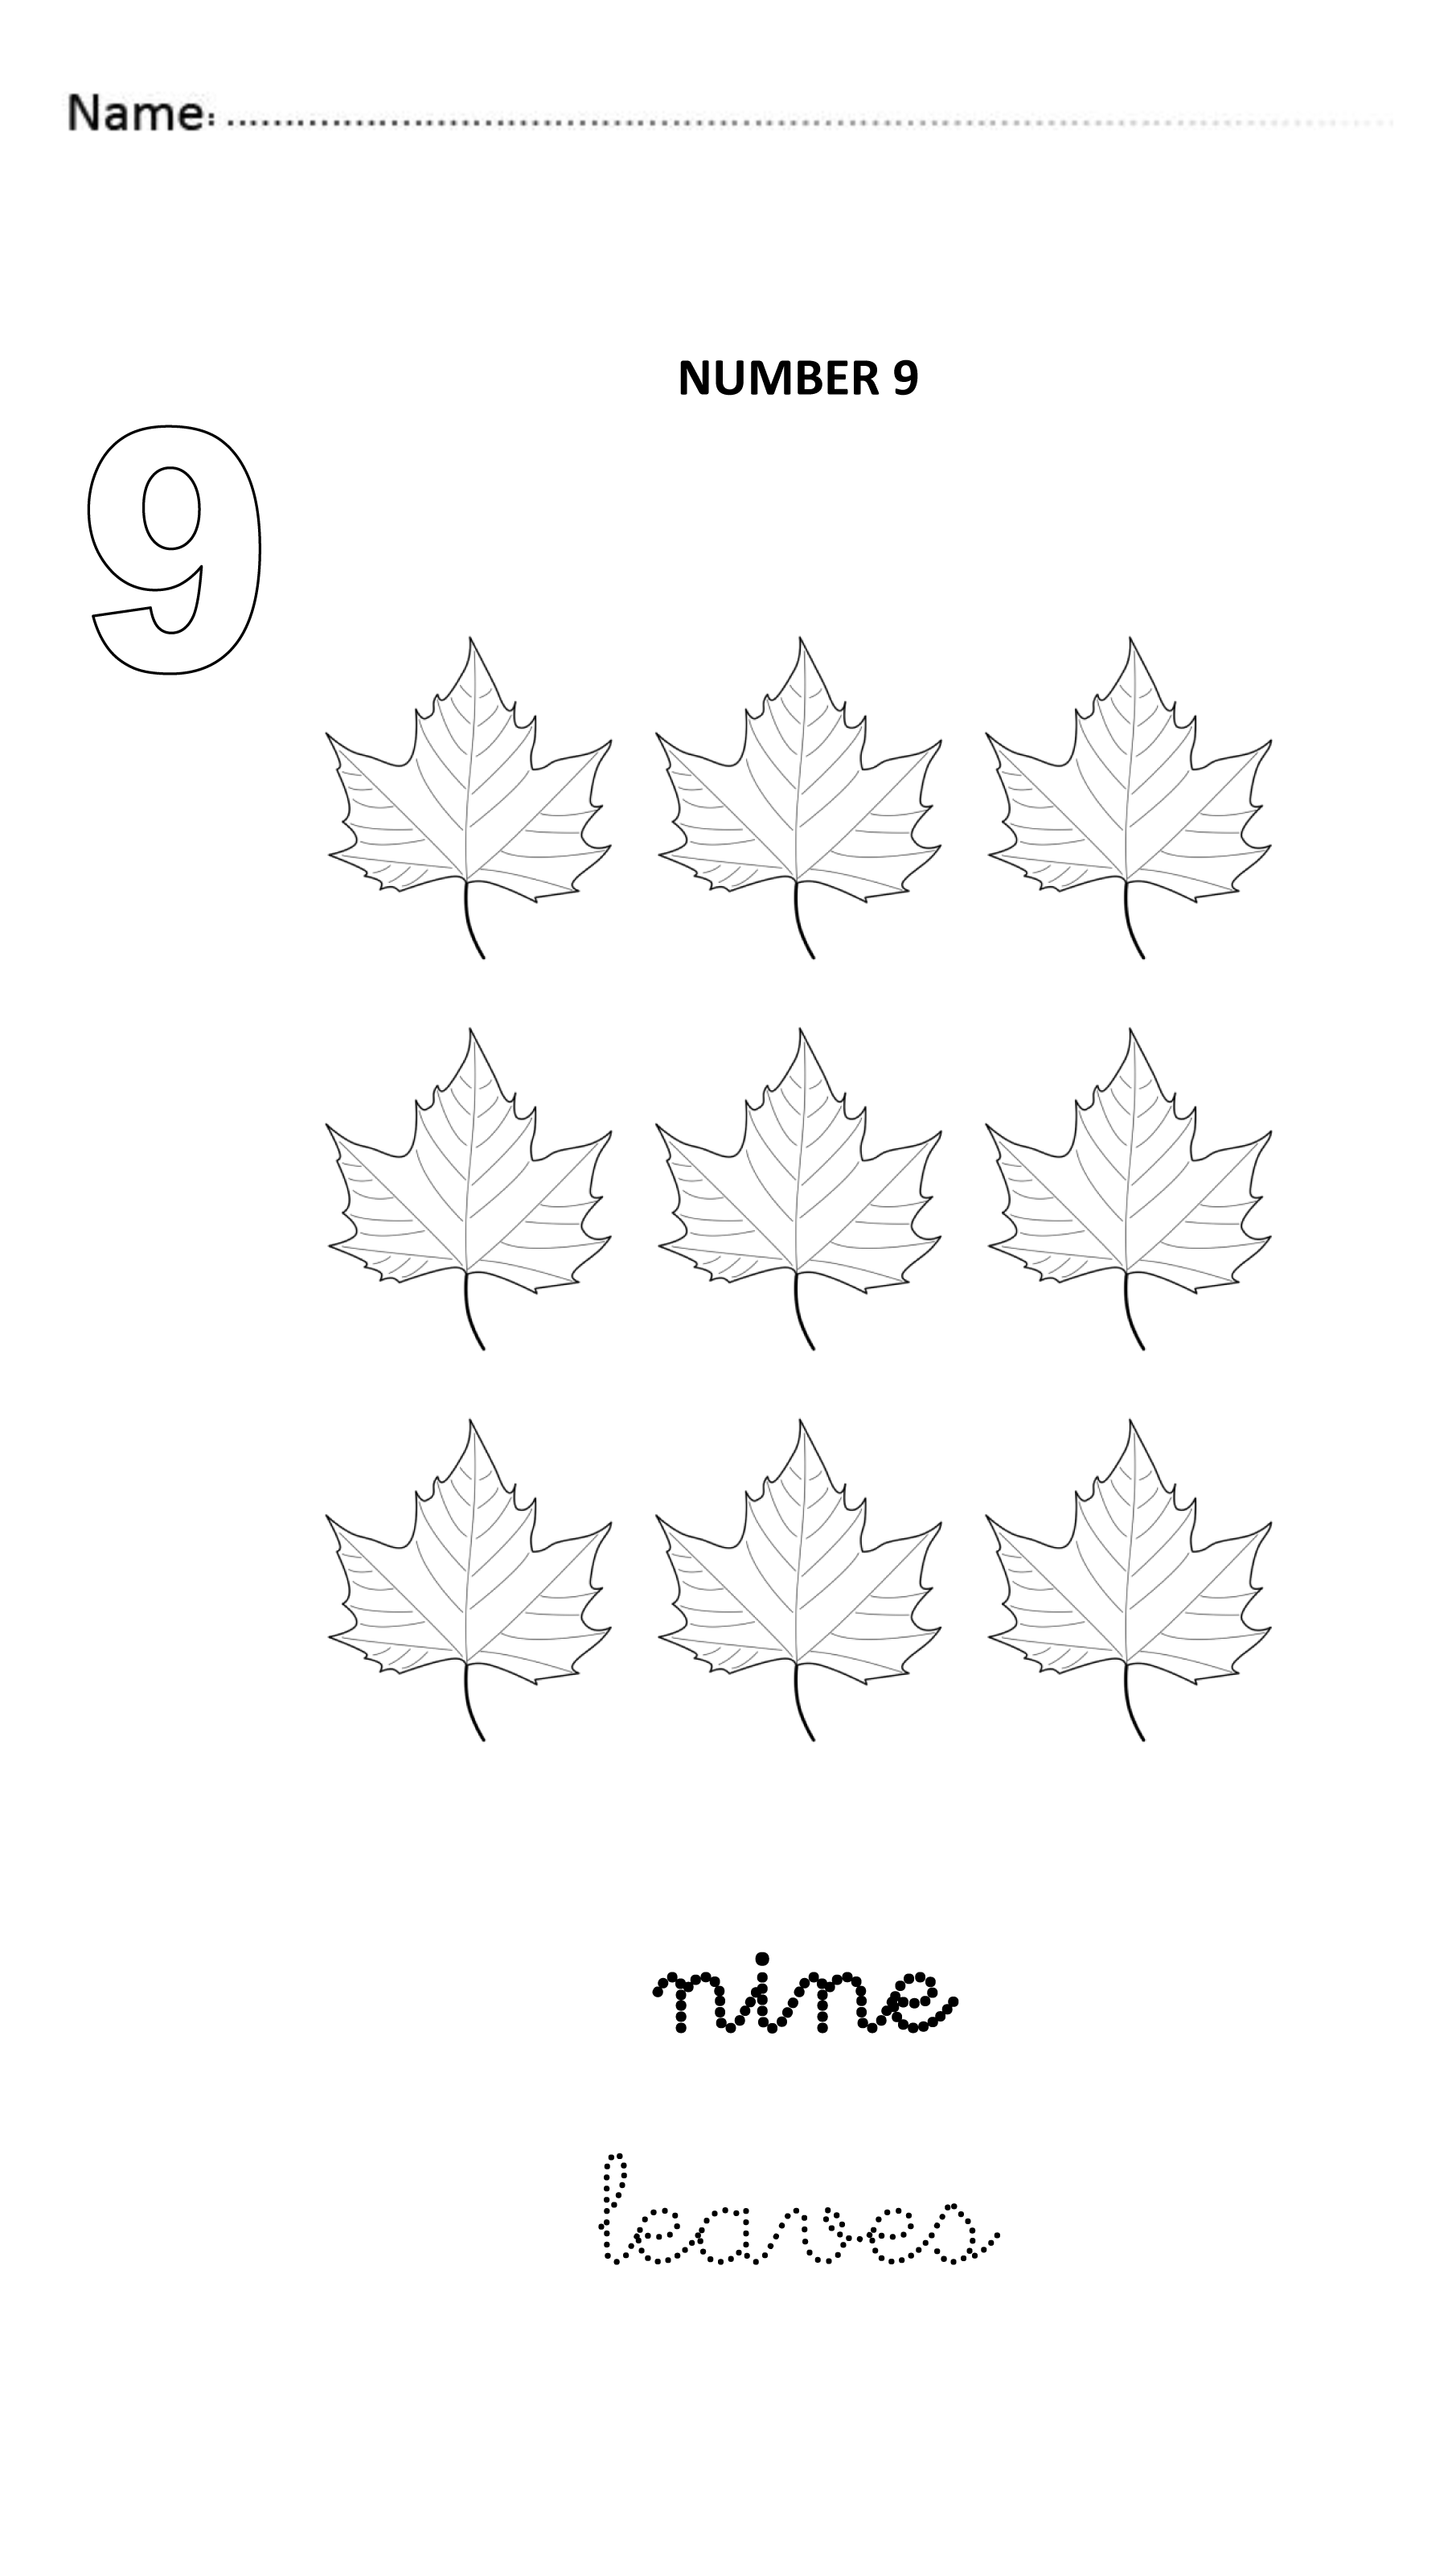 Number 9 Easy And Visual Worksheet To Teach Numbers For